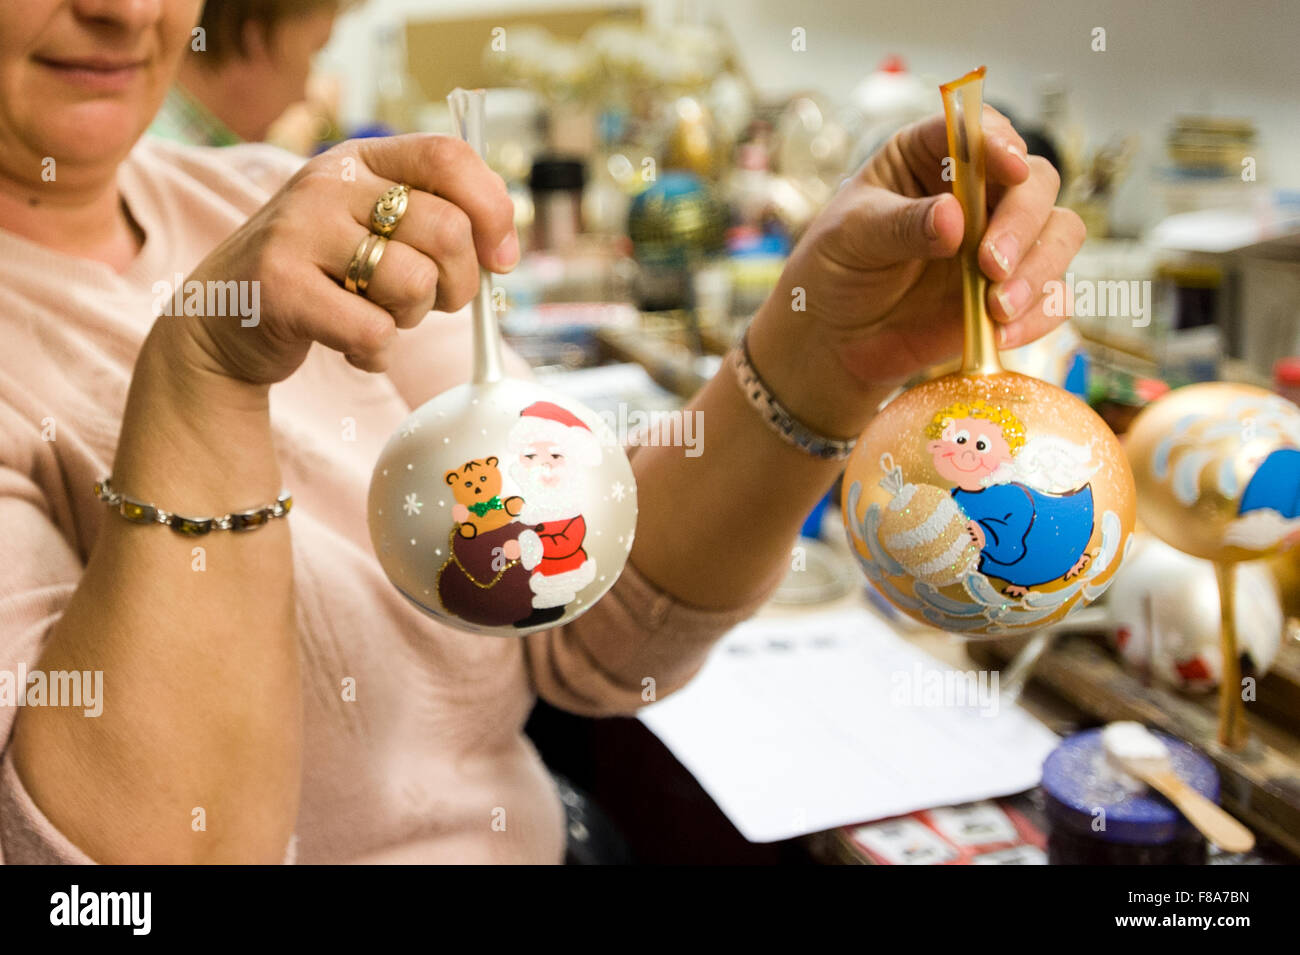 Piotrkow Trybunalski, Poland. 7th December, 2015. Worker presents finished christmass balls at 'Szkło-Decor' - Stock Image